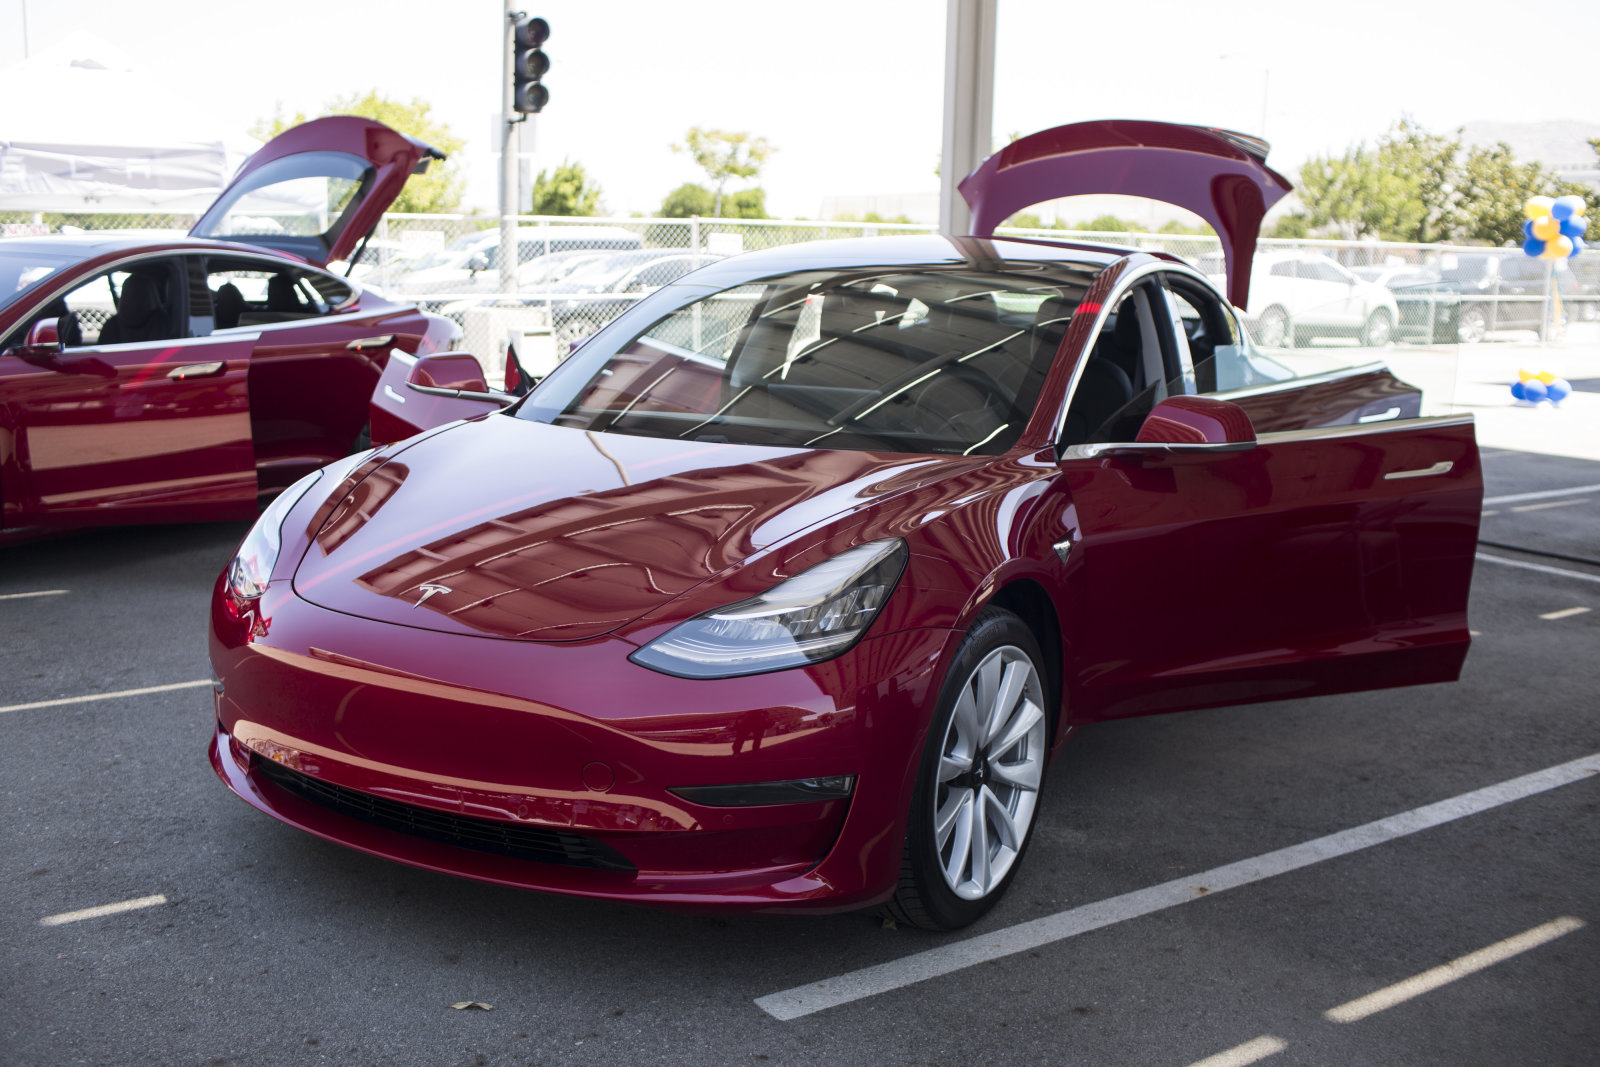 A Tesla Inc. Model 3 electric vehicle is displayed during the California Air Resources Board (CARB) 50th Anniversary Technology Symposium and Showcase in Riverside, California, U.S., on Thursday, May 17, 2018. The symposium highlights CARB's history of clean air leadership that has driven innovative solutions and made monumental improvements to Southern California's air quality. Photographer: Dania Maxwell/Bloomberg via Getty Images